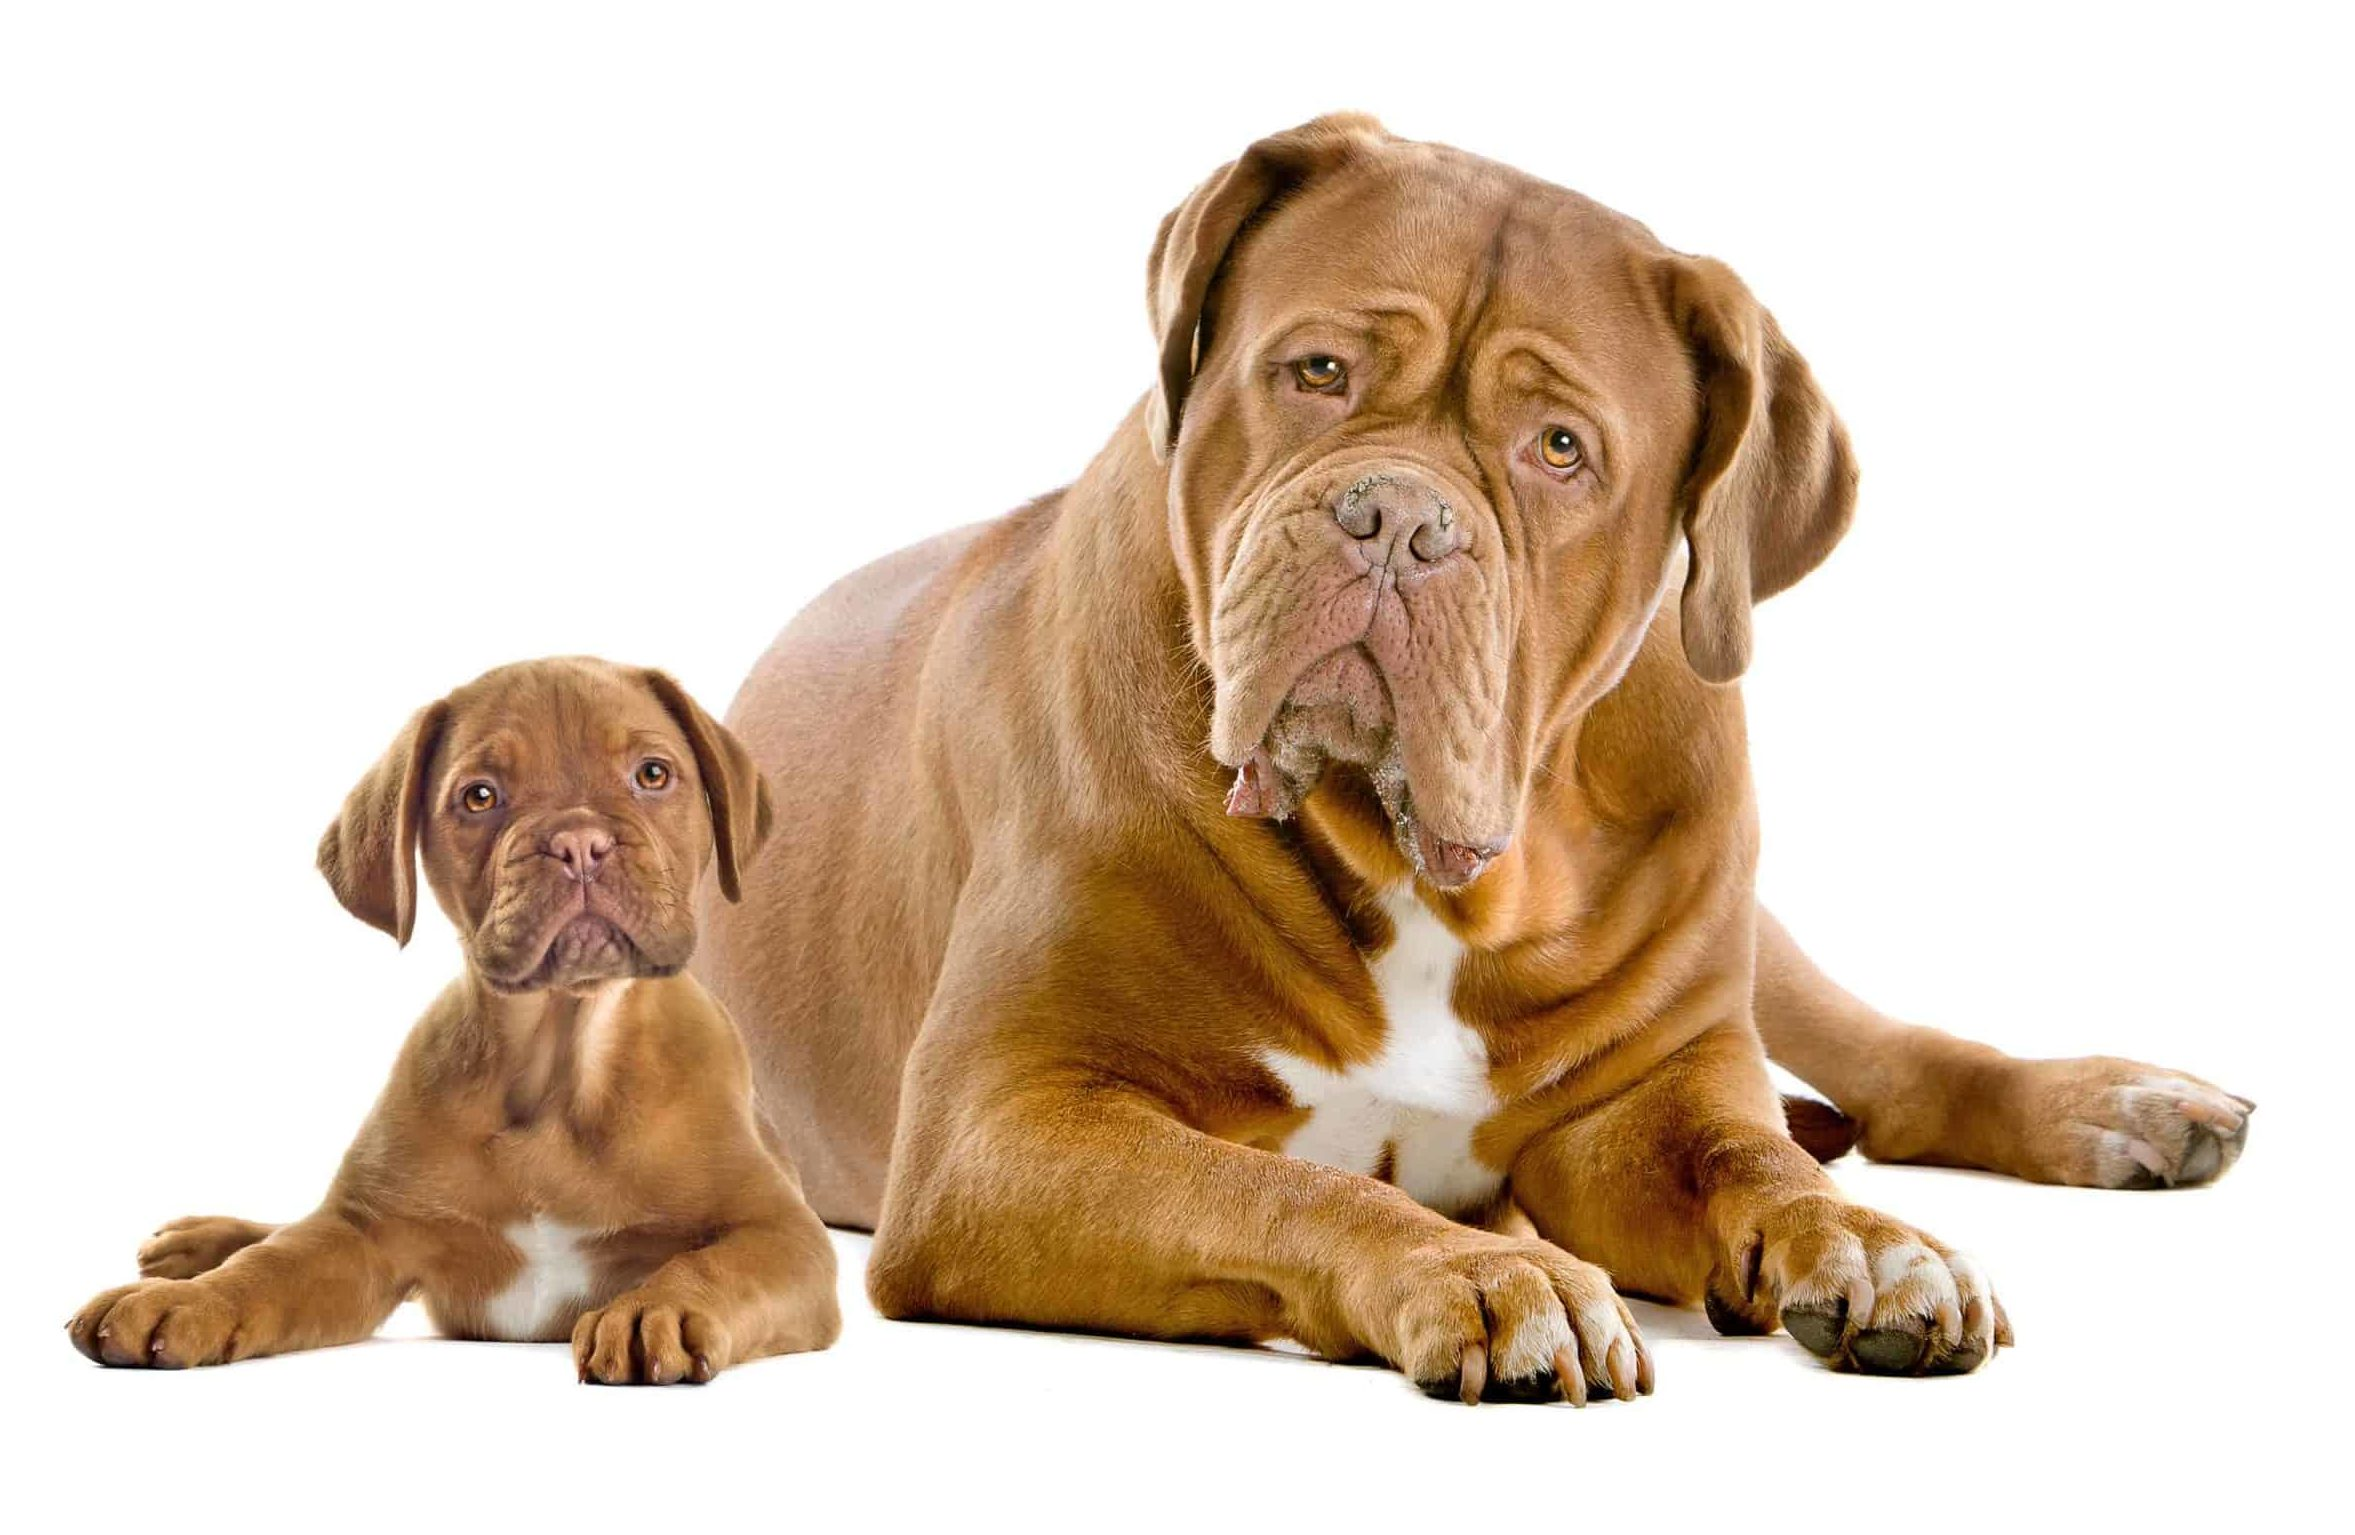 Puppy with adult dog. Older dogs usually adapt when you add new dog, but some struggle. Let the dogs work it out. Step in only if they become violent.